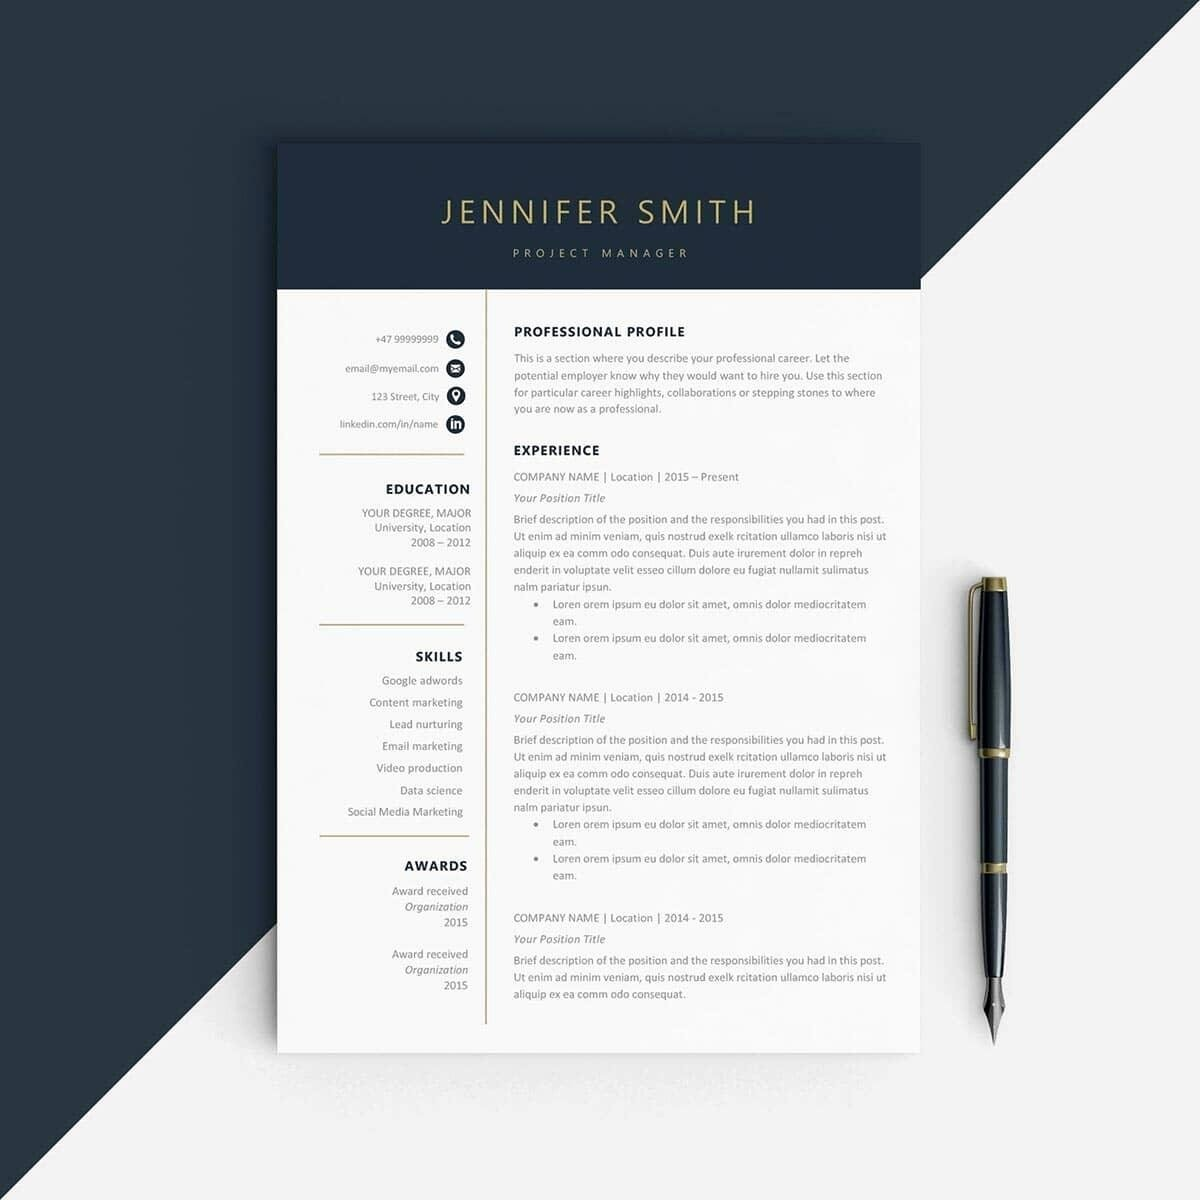 A Template for A Resume New Best Resume Templates 15 Examples to Download & Use Right